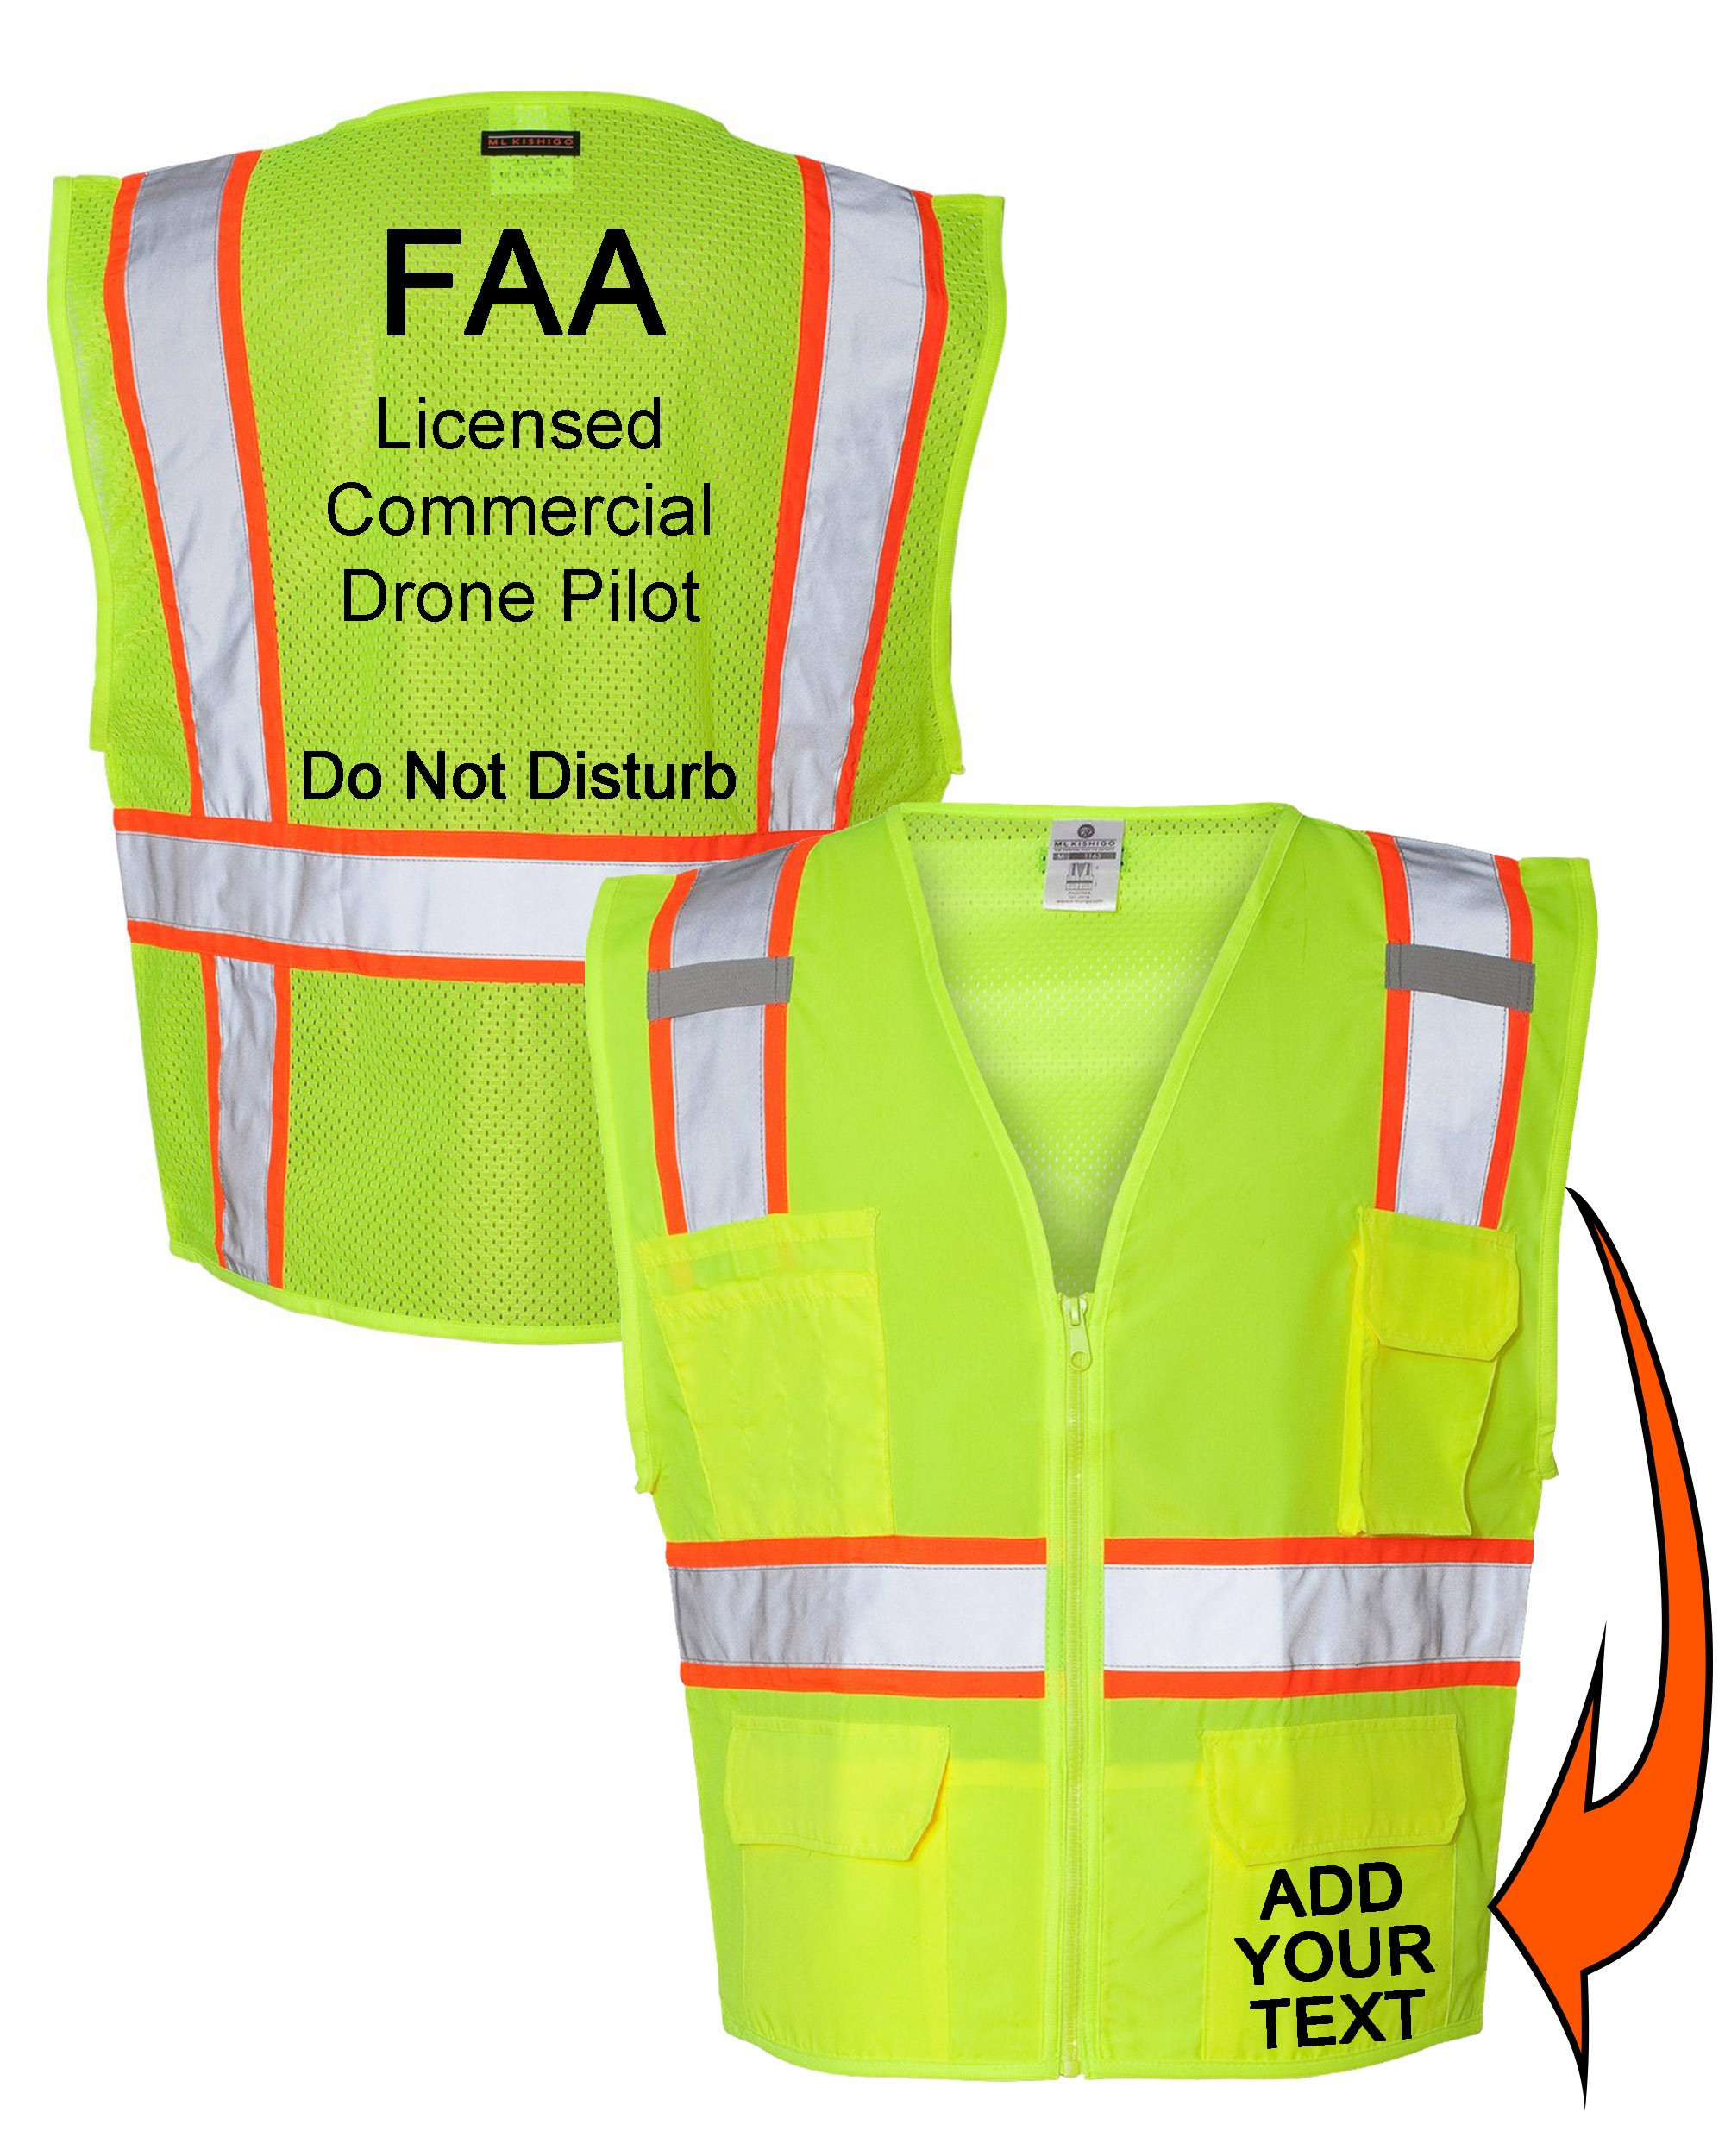 Custom Safety Reflective Mesh Vest with Zipper - Personalized Drone Pilot Vest by Safety Miracle (Image #1)